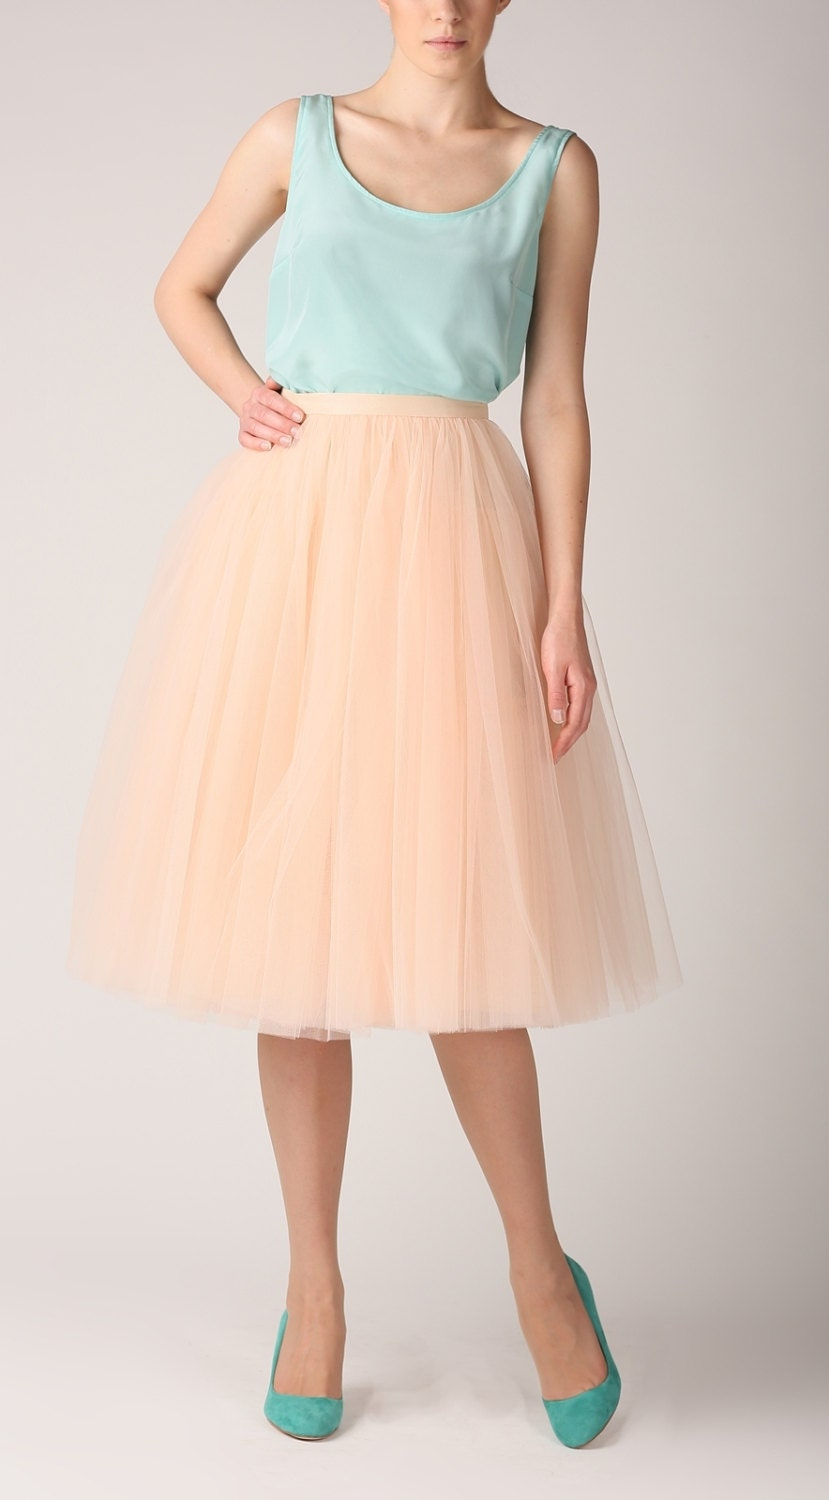 Tulle Skirt Long Petticoat High Quality Tutu Skirts Tulle